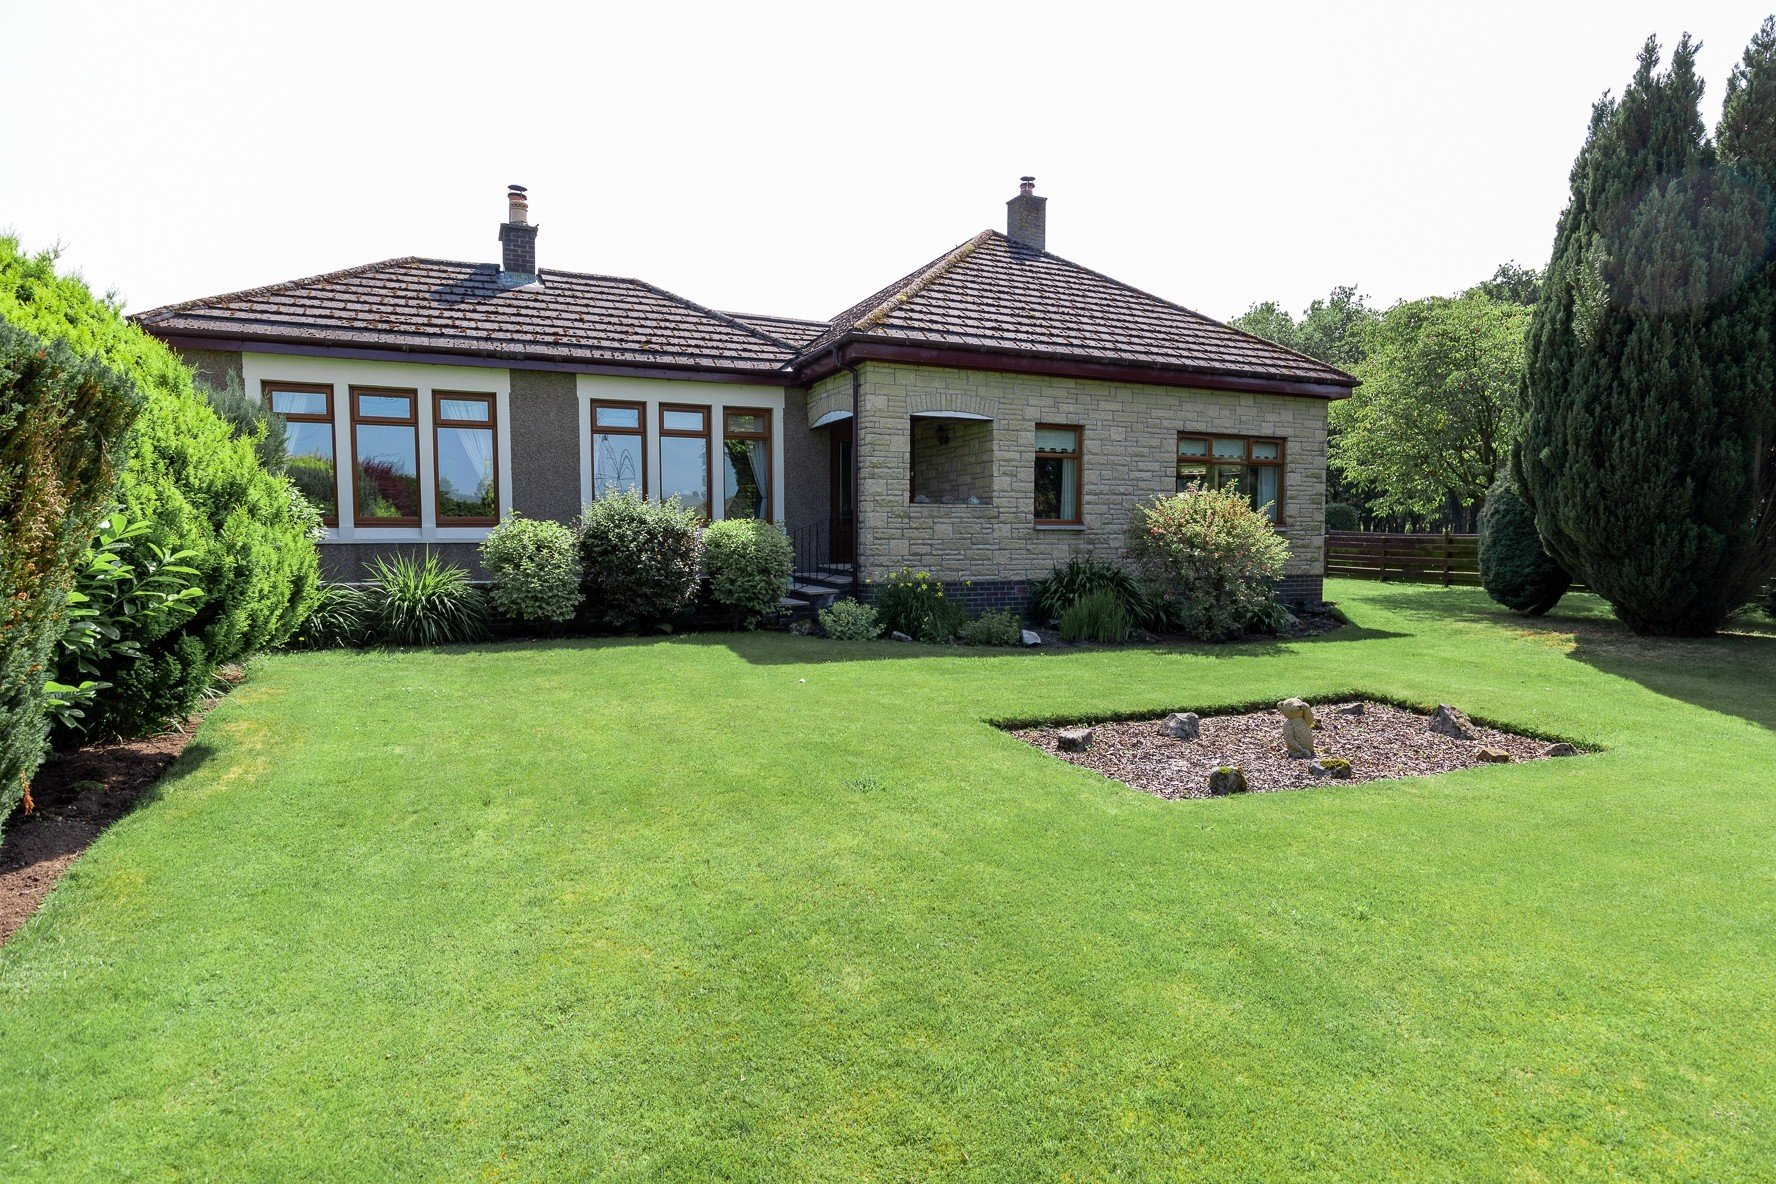 Profitable Boarding Kennels with Superb Family Home in 2.5 acres, Central Scotland - Image 2